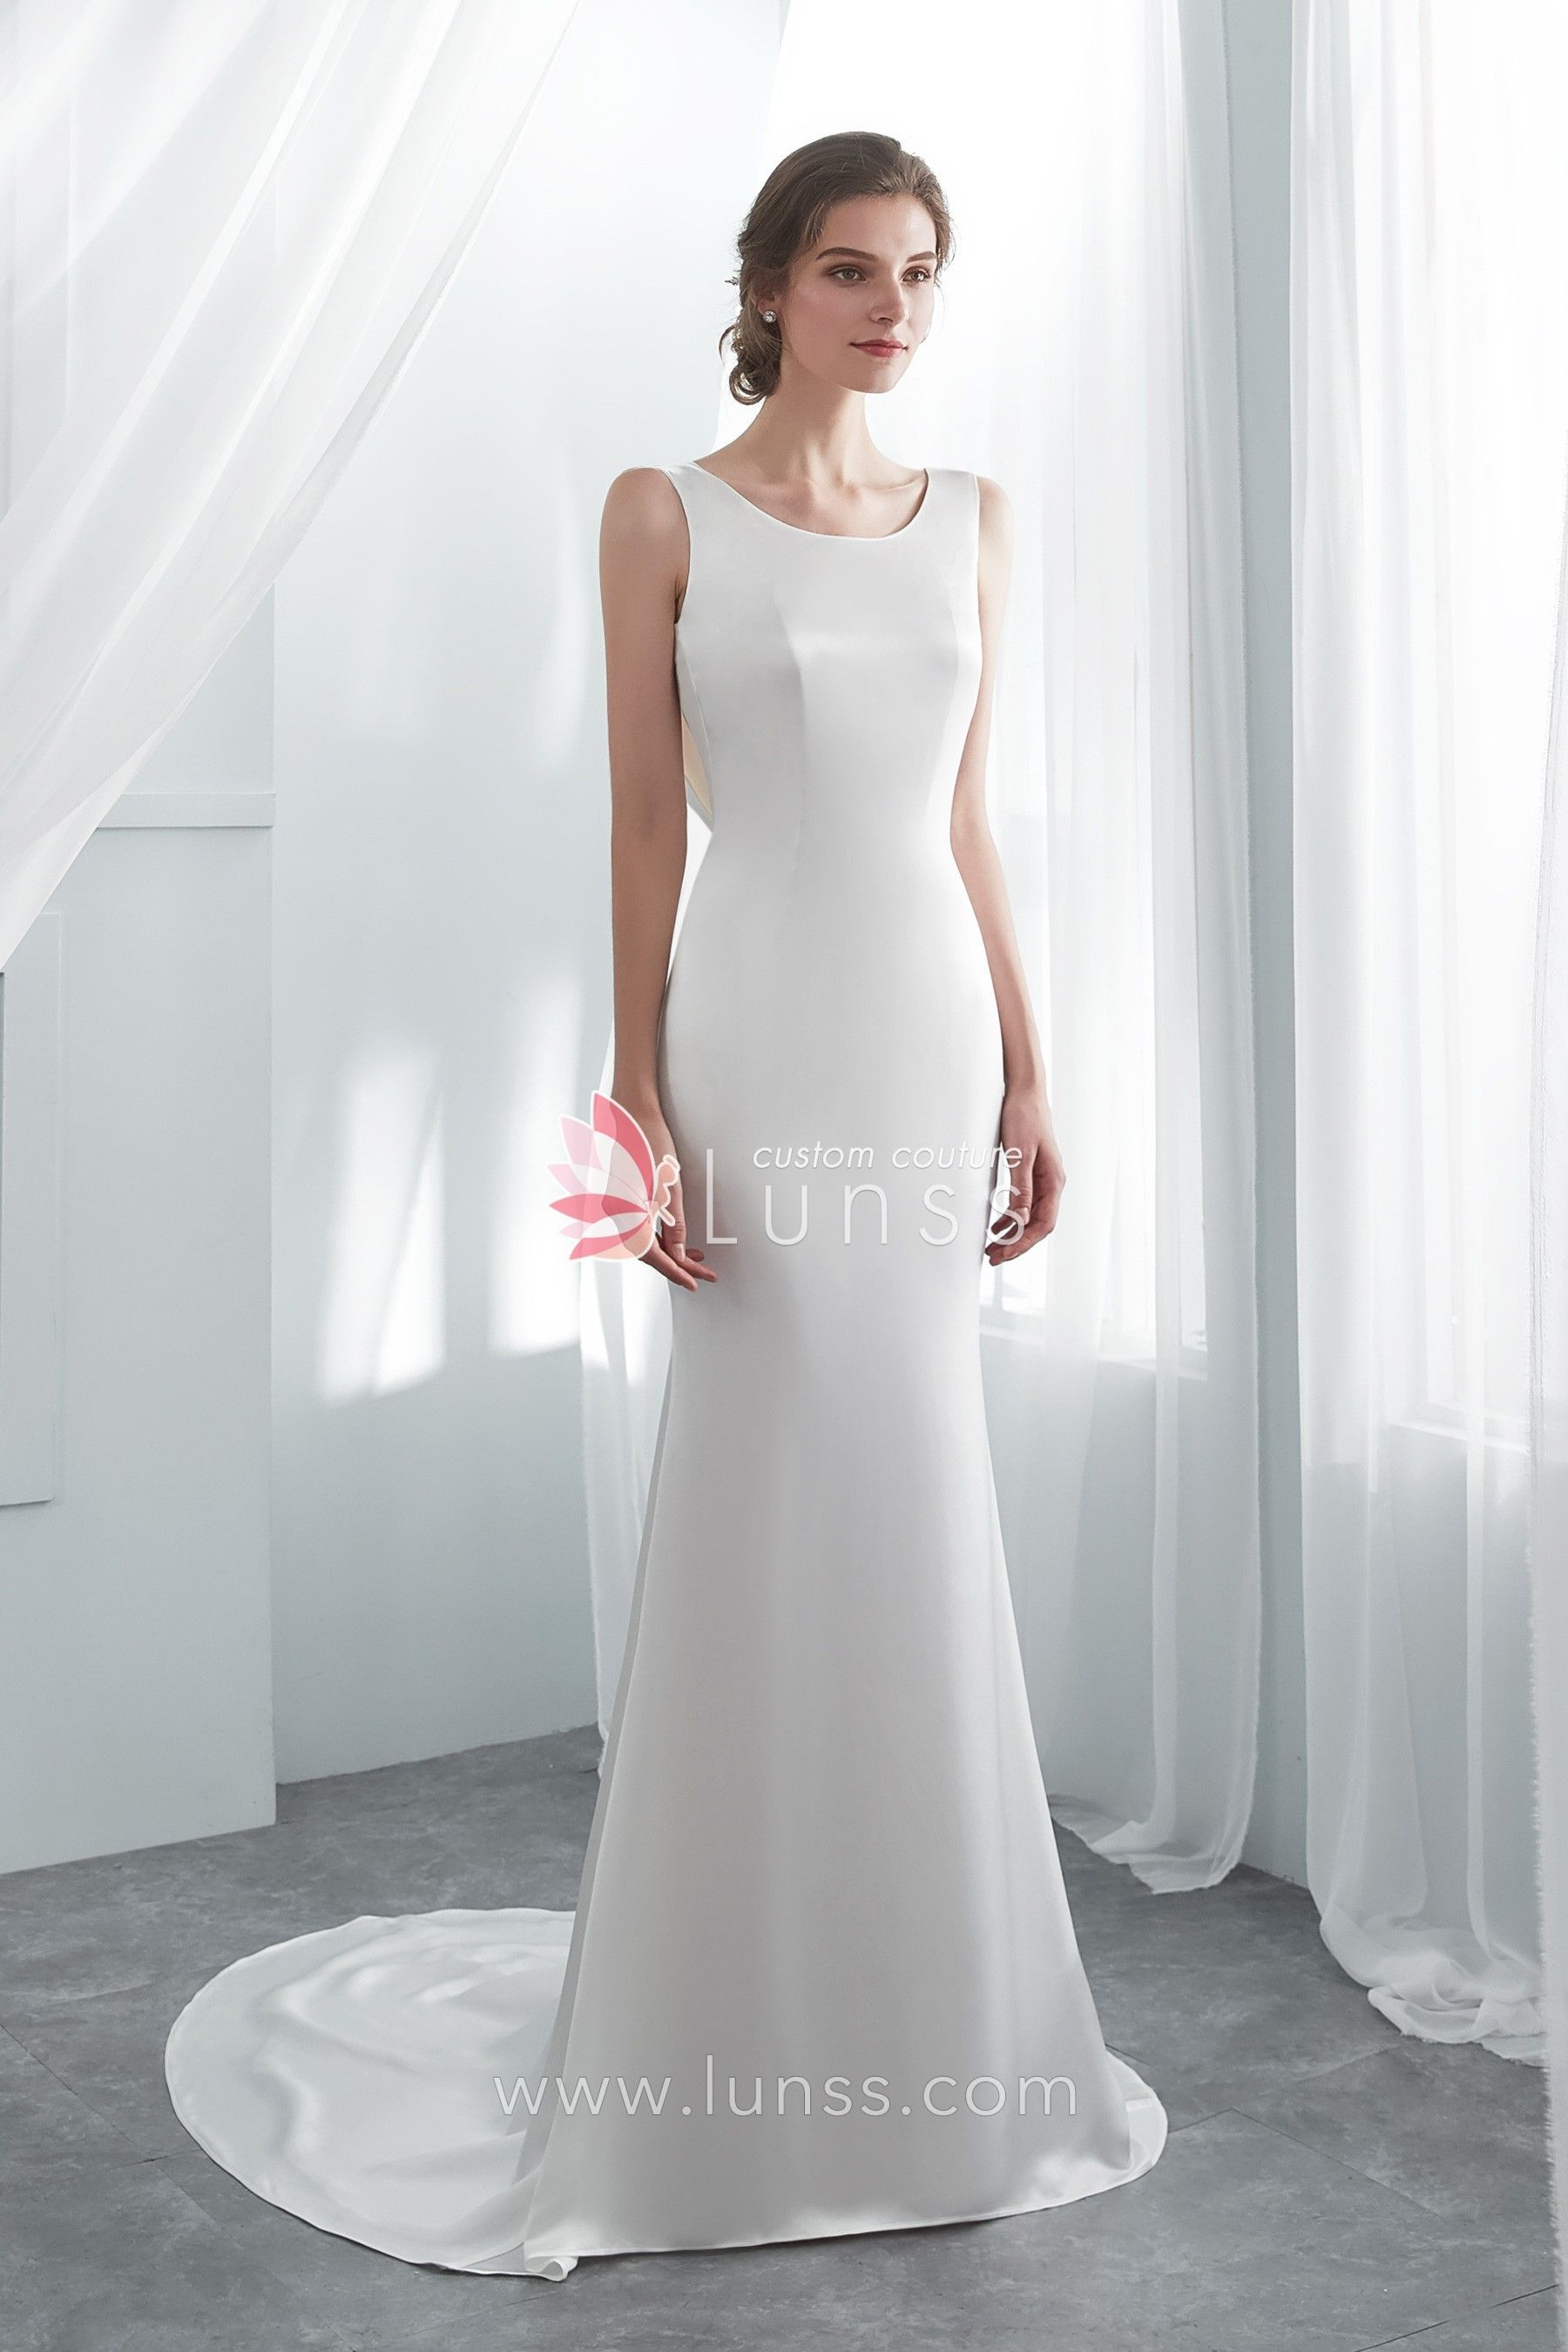 bba7b14985 Ivory Elegant Acetate Satin Beaded Lace Long Mermaid Wedding Gown with Cowl  Back